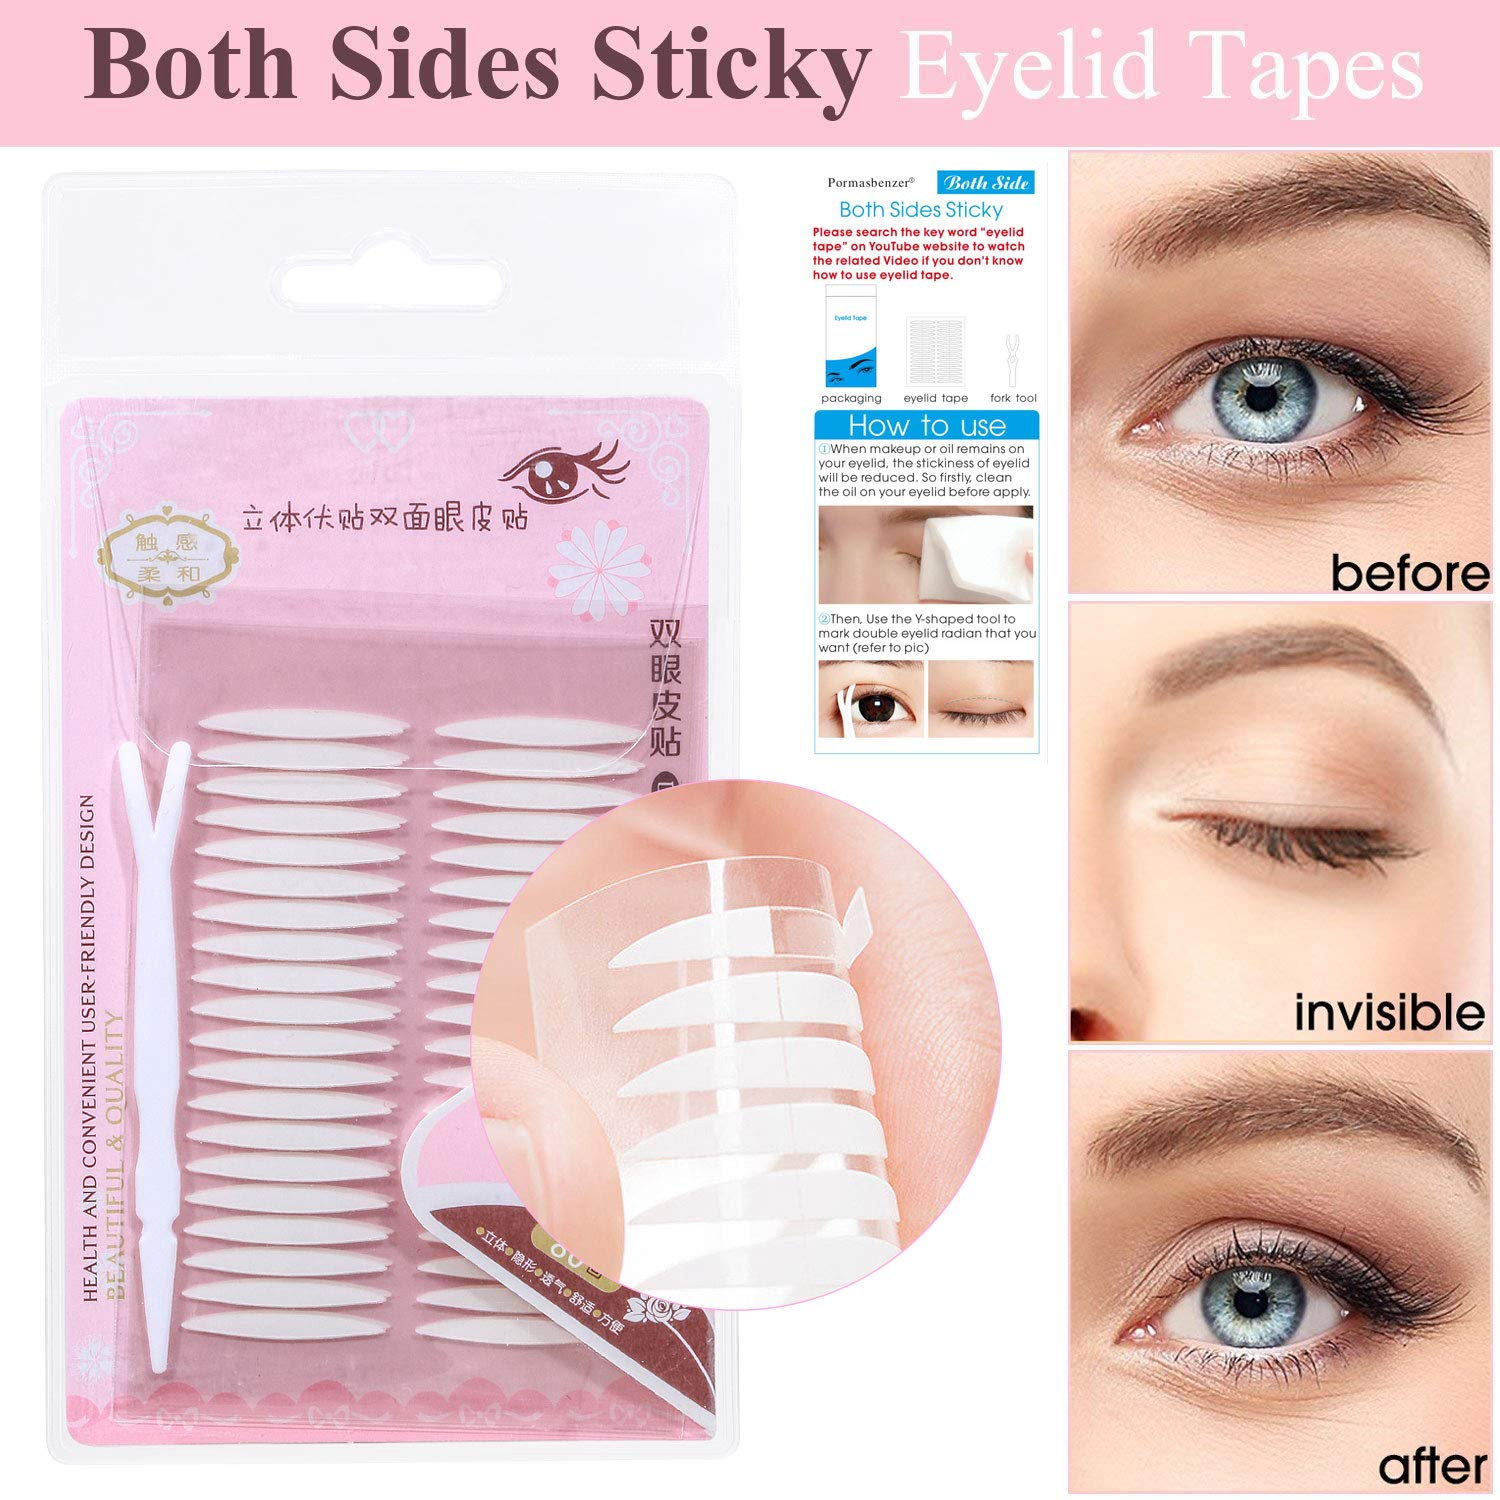 Both Sides Sticky Ultra Invisible Double Eyelid Tape Stickers Instant Eyelid Lift Without Surgery, Medical Grade Latex Free Hypoallergenic, Perfect for Hooded, Droopy, Uneven, Mono-eyelids,120 Pairs